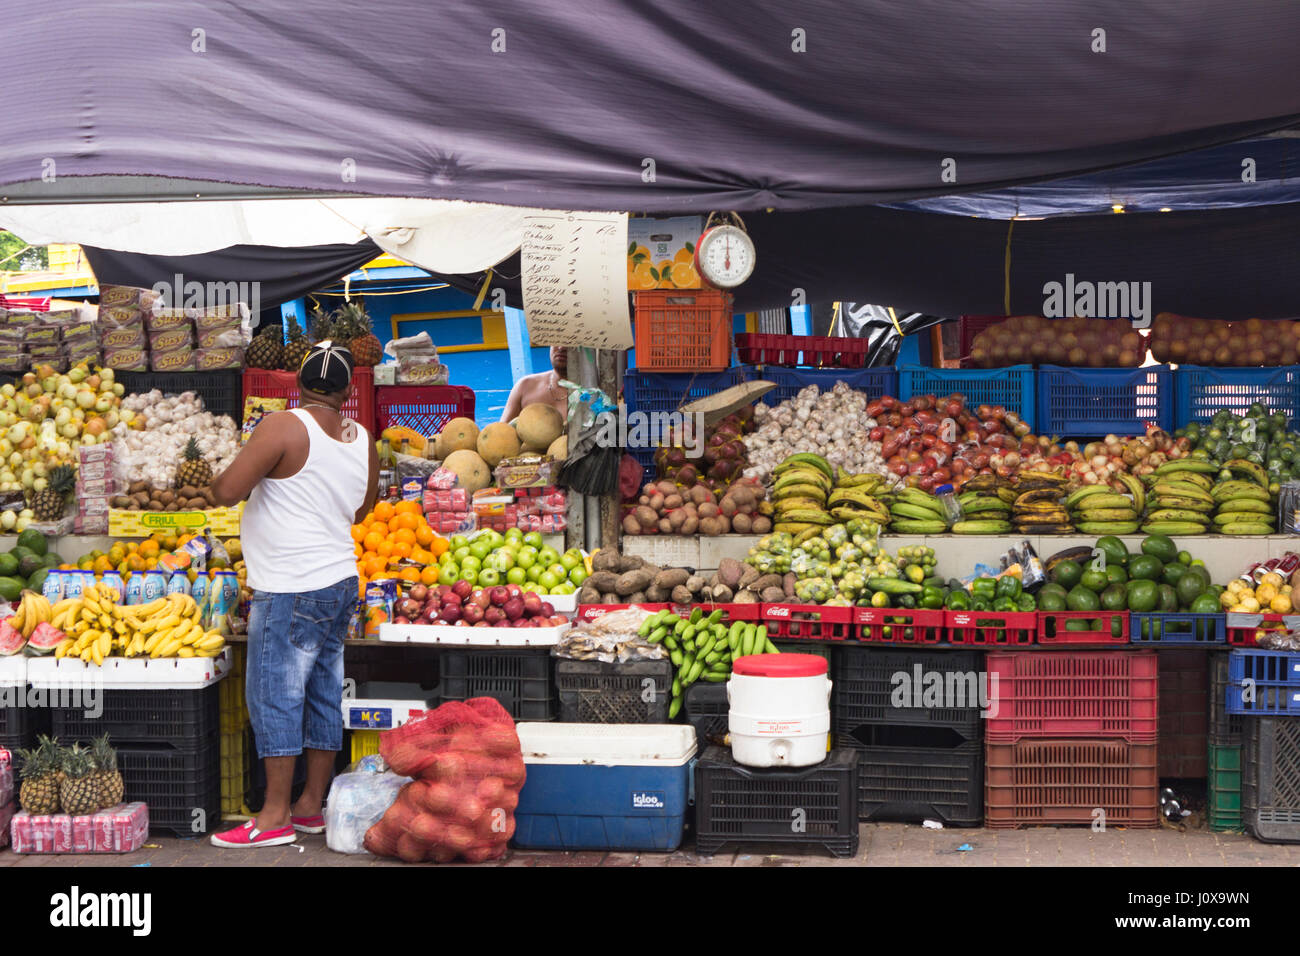 A vendor mans his produce stall in the floating market, Willemstad, Curacao - 11/27/2015 - Stock Image